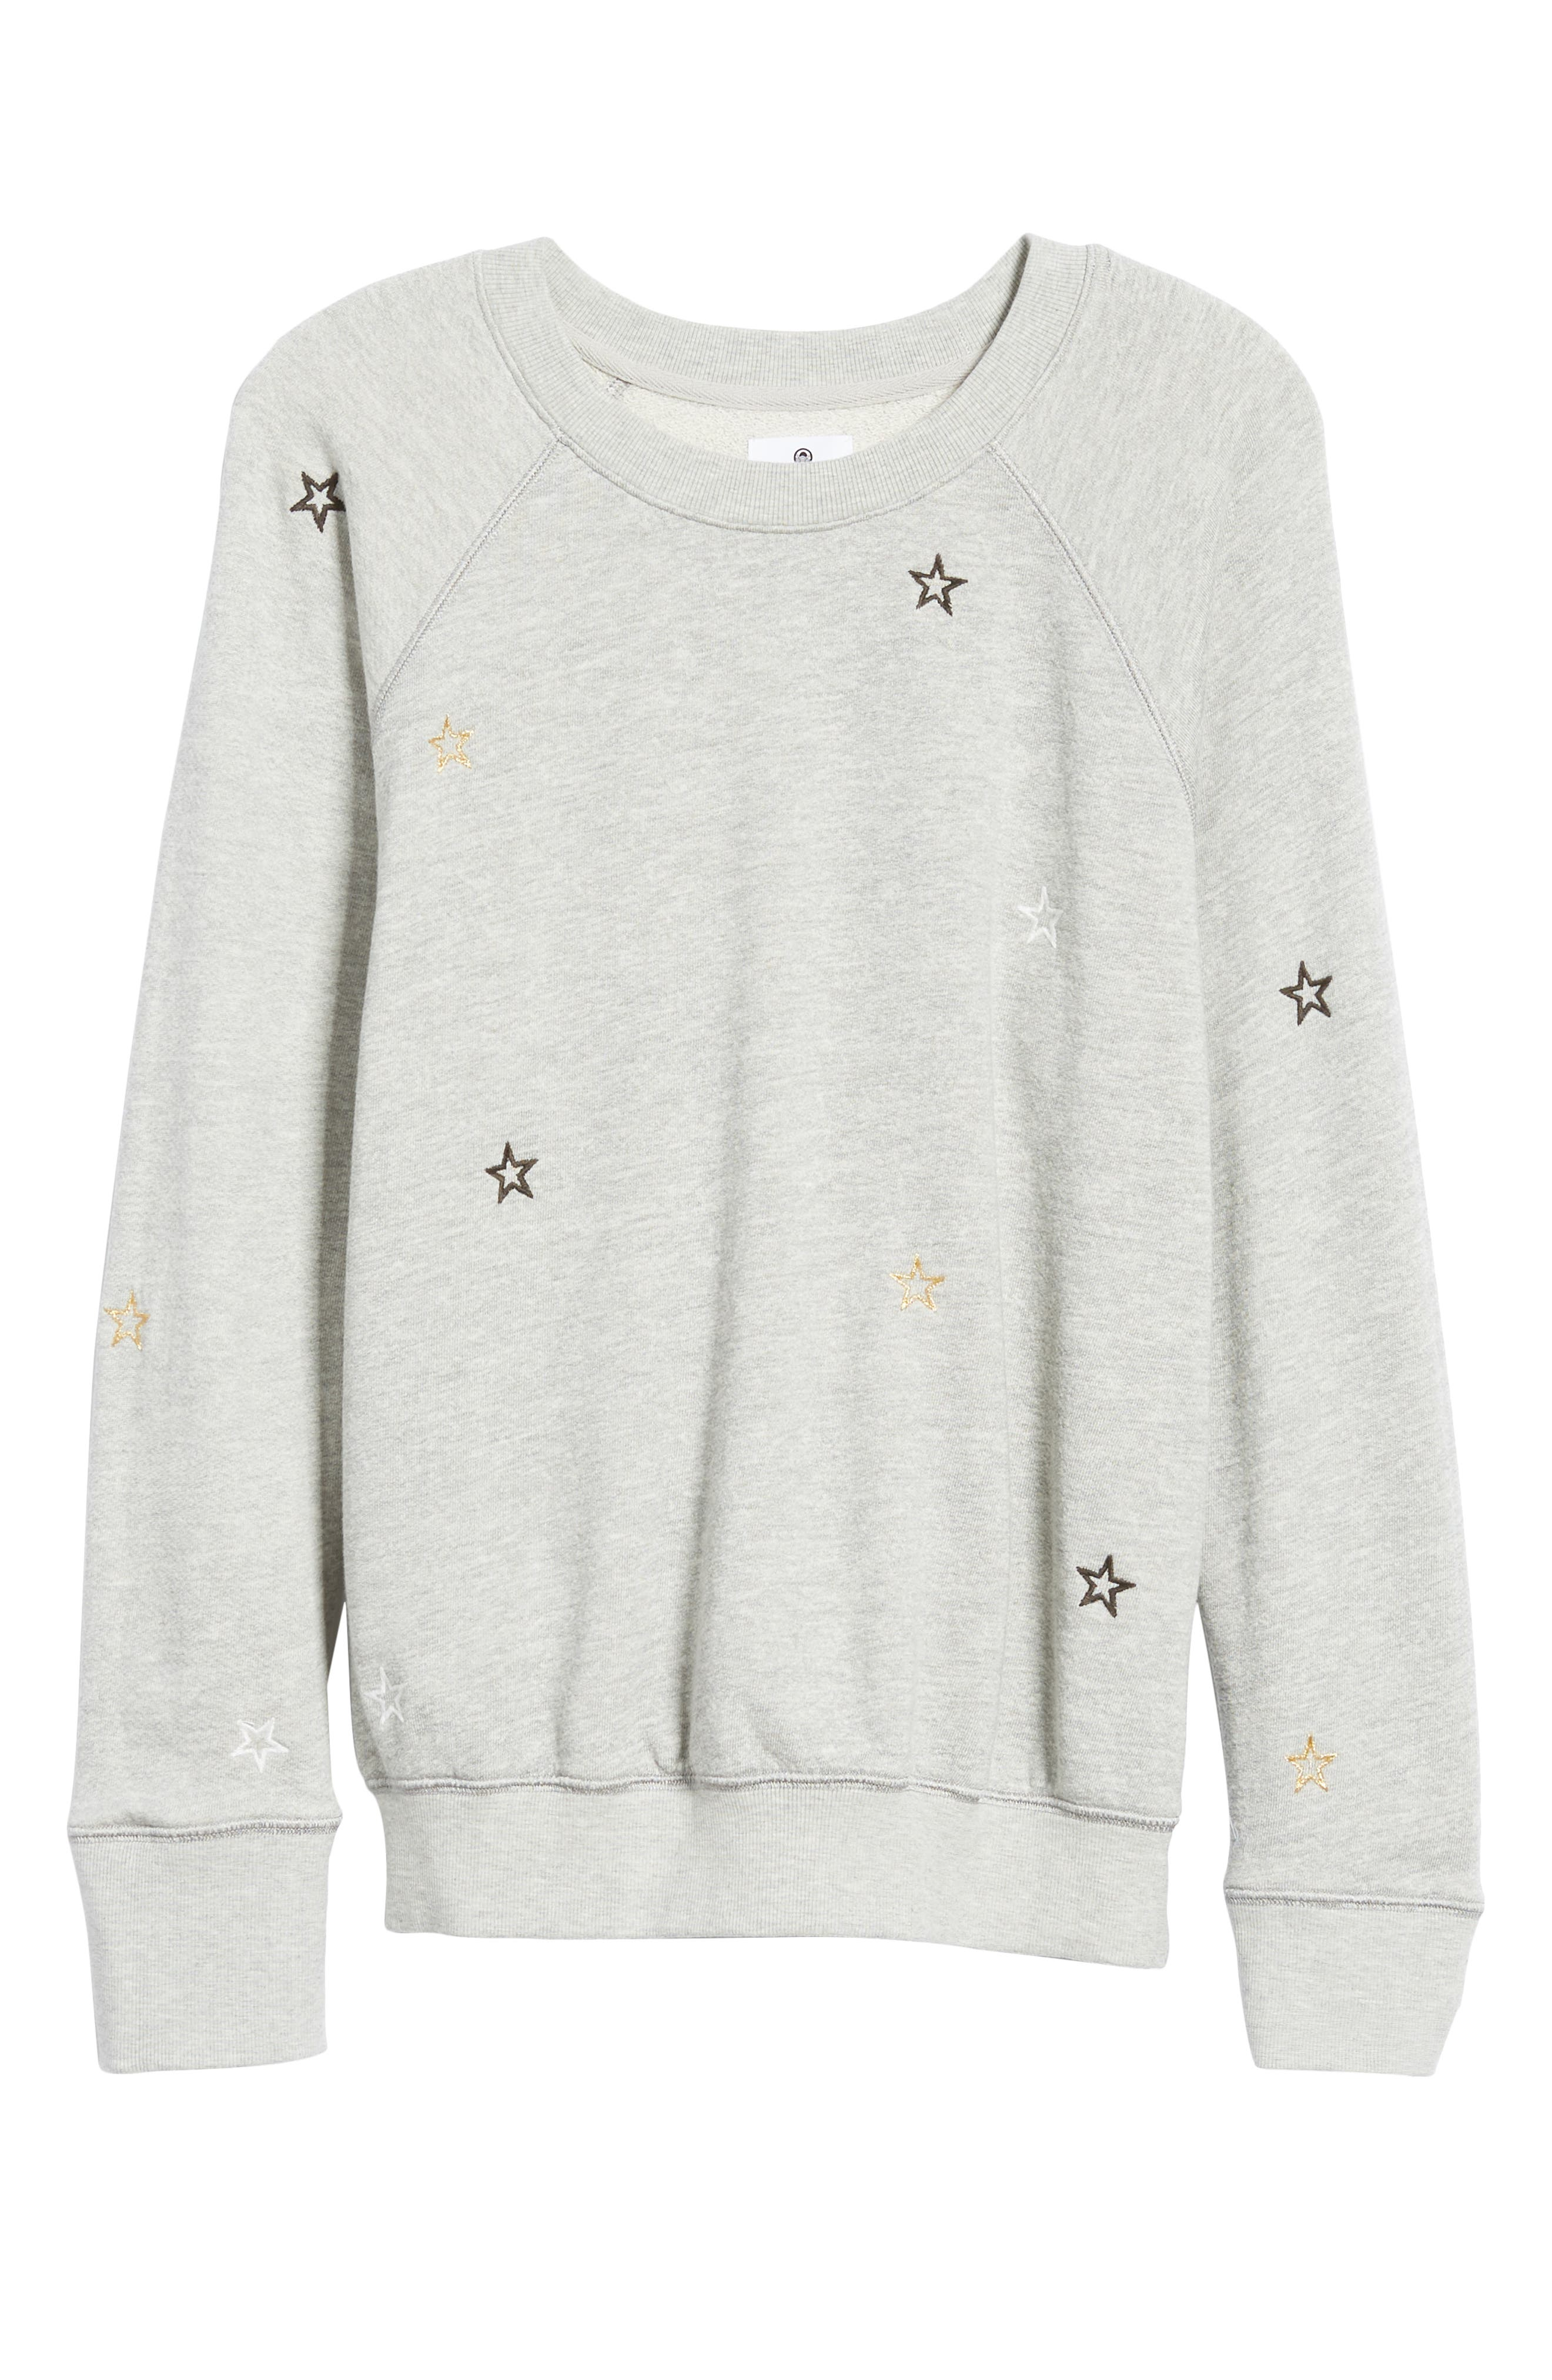 Star Embroidered Sweatshirt,                             Alternate thumbnail 6, color,                             HEATHER GREY